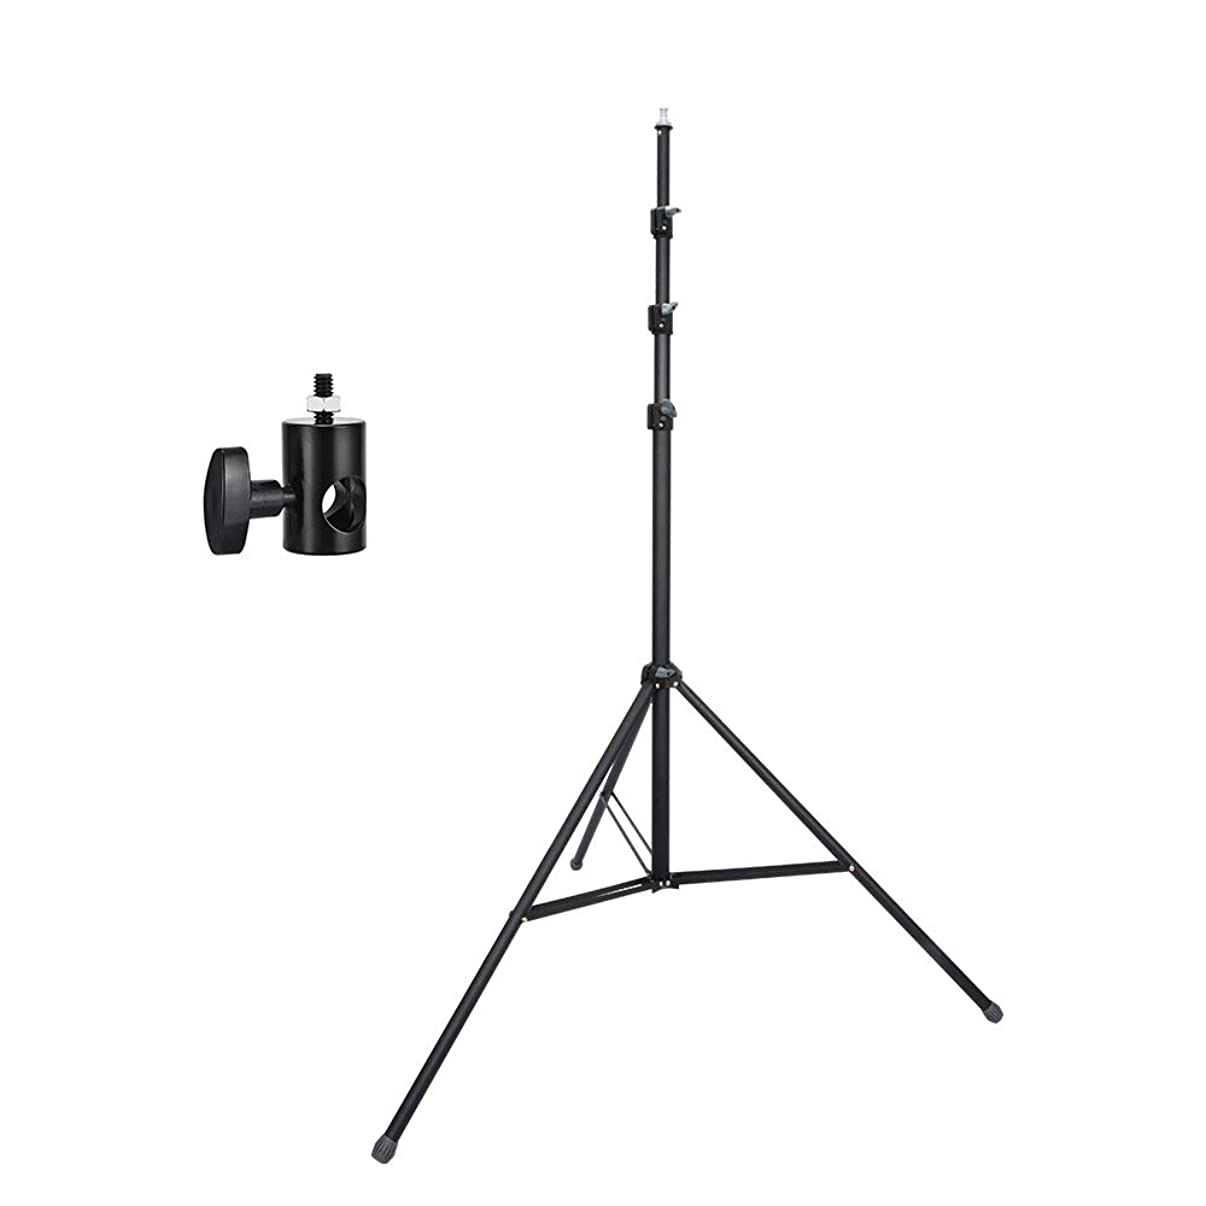 UTEBIT 12FT Light Stand with 1/4 Adapter Heavy Duty Softbox Stands High Adjustable 110cm-360cm Photo Stage Tripod Foldable 3.6M Frosted Material Lighting Stands Kit for Camera Video Photography Studio